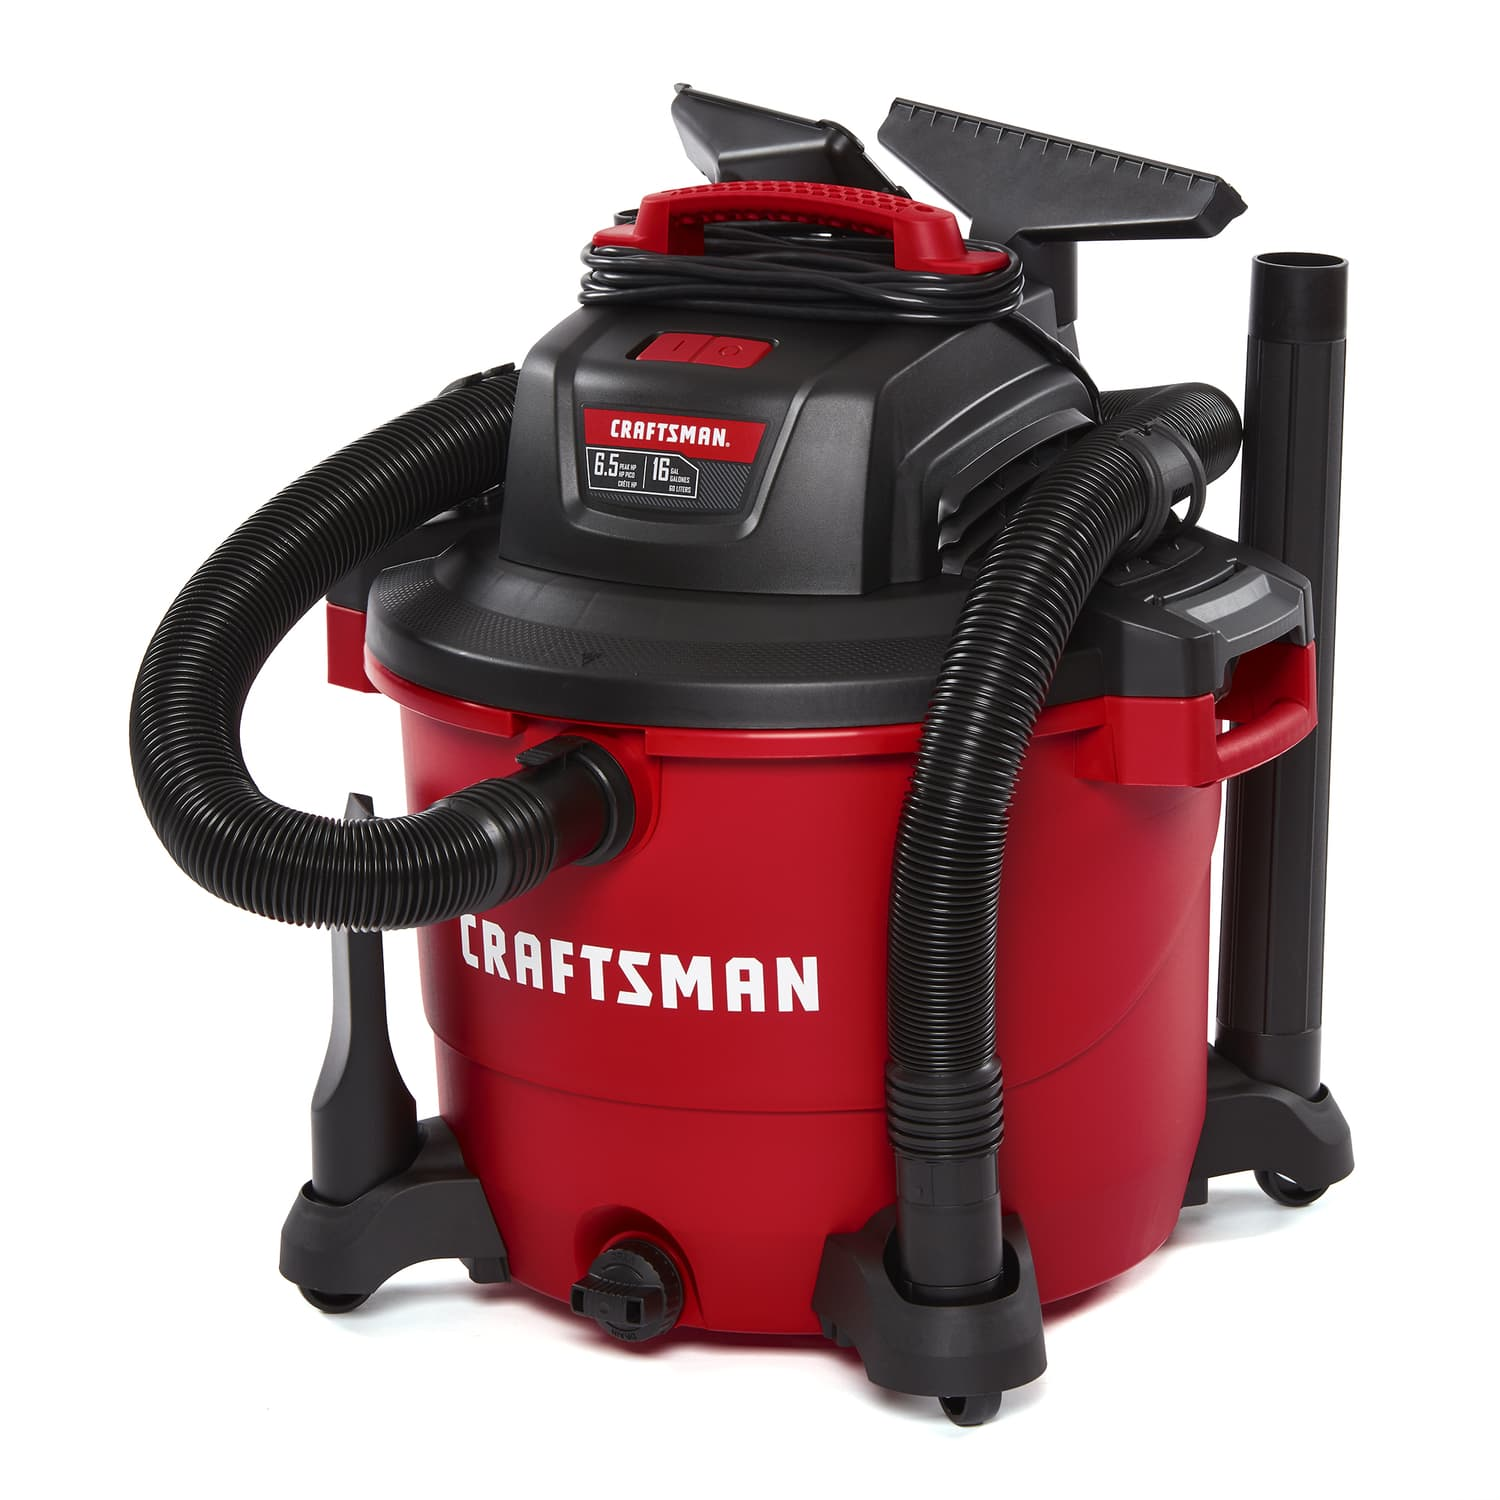 Craftsman 16-Gallon 6.5 Peak HP Wet/Dry Vacuum w/ Accessories